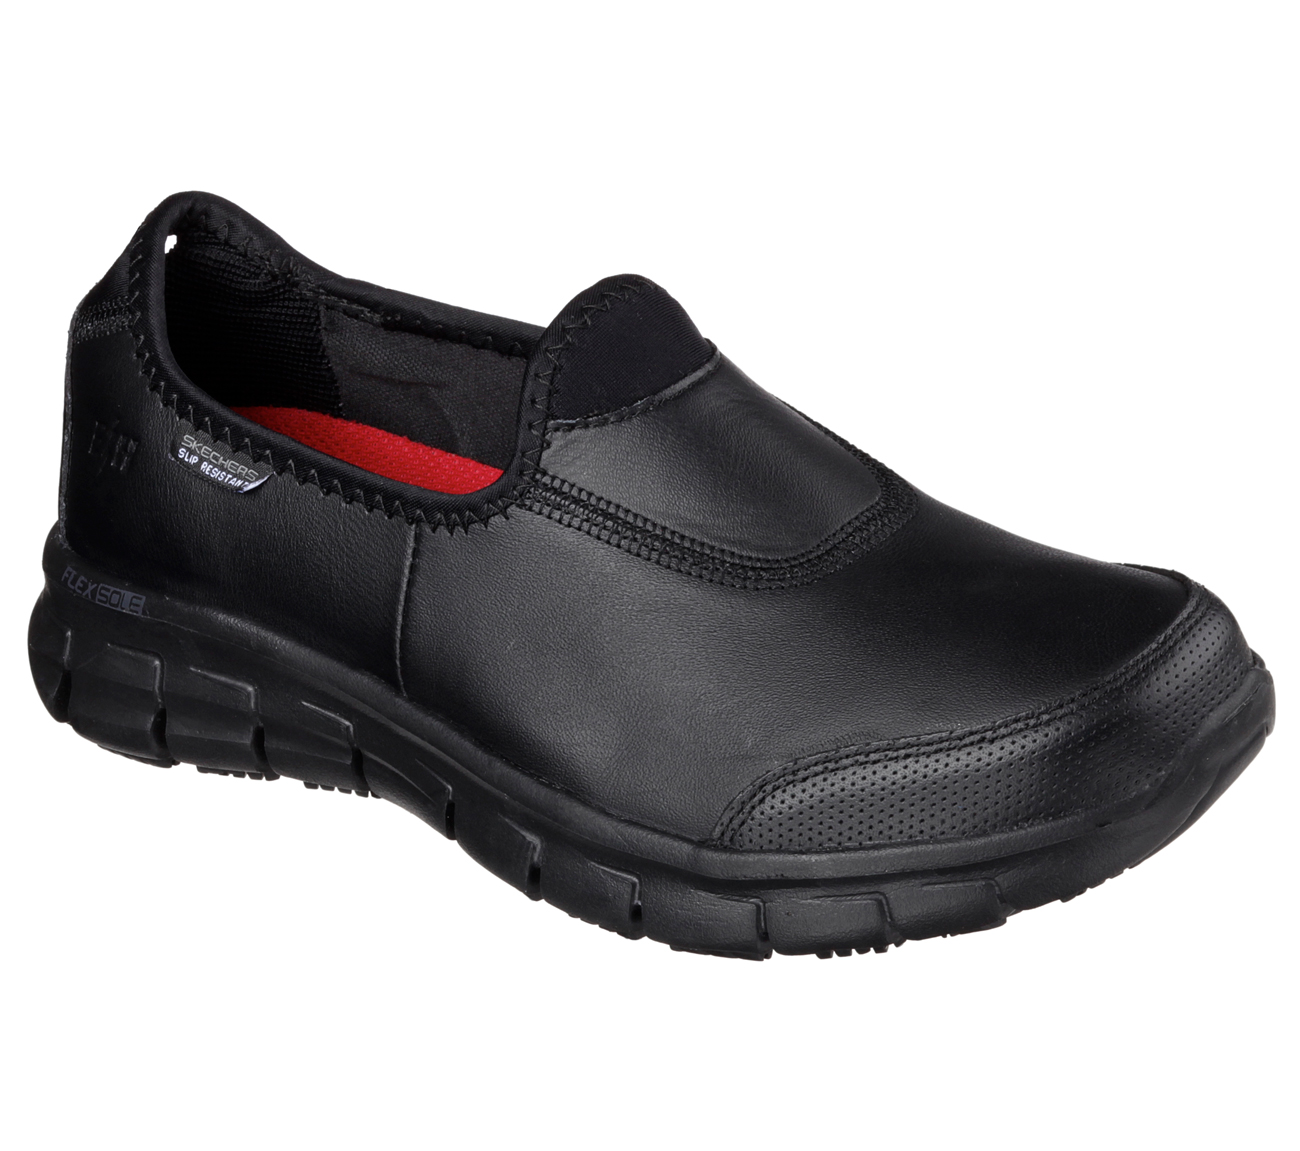 Nike Non Slip Work Shoes For Womens